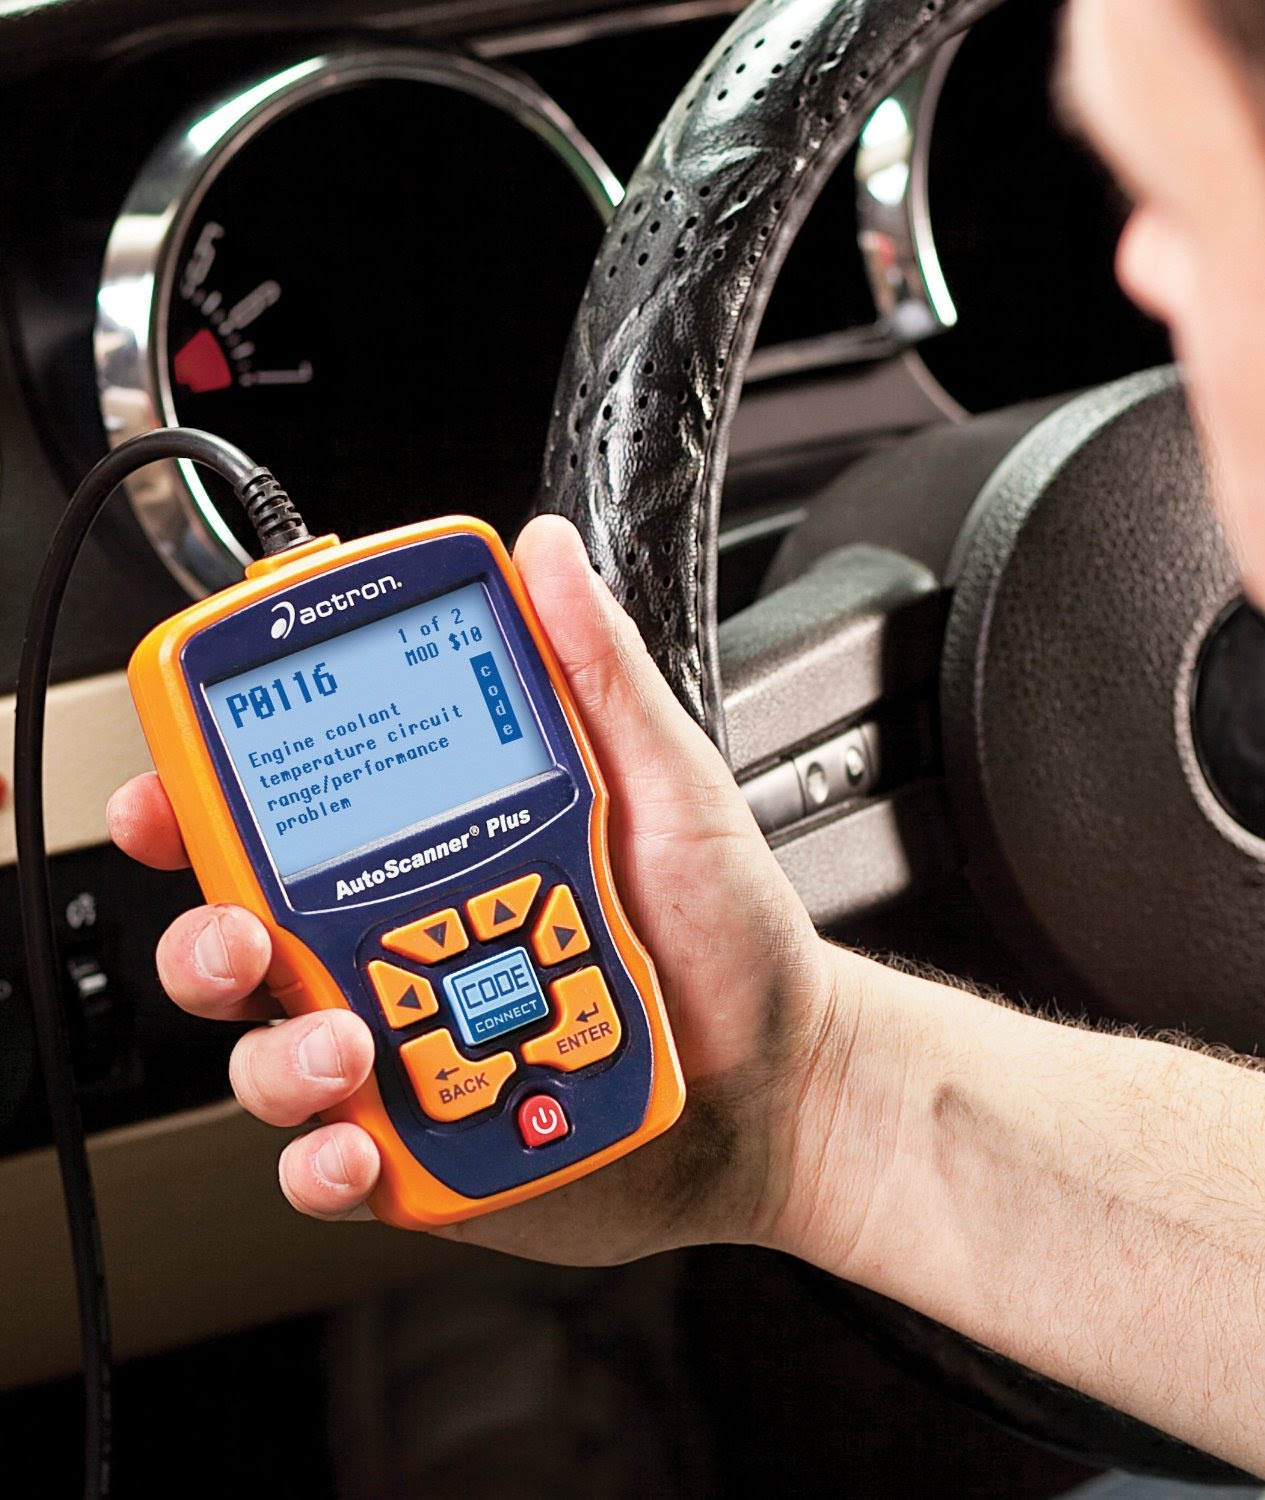 The best scan tool for home mechanic gives you a professional appearance and premier performance.